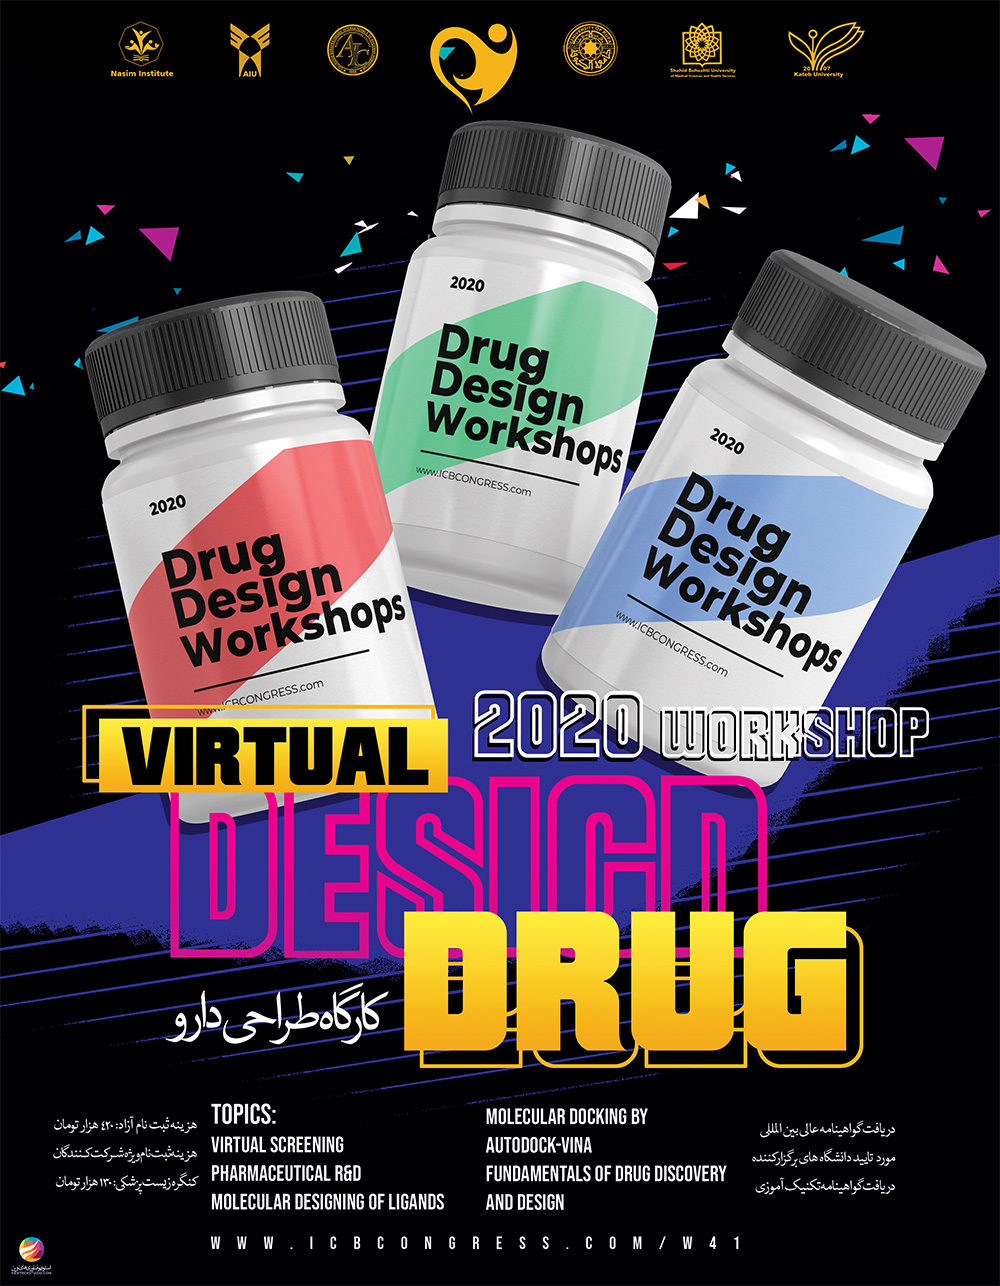 Drug Design Workshops